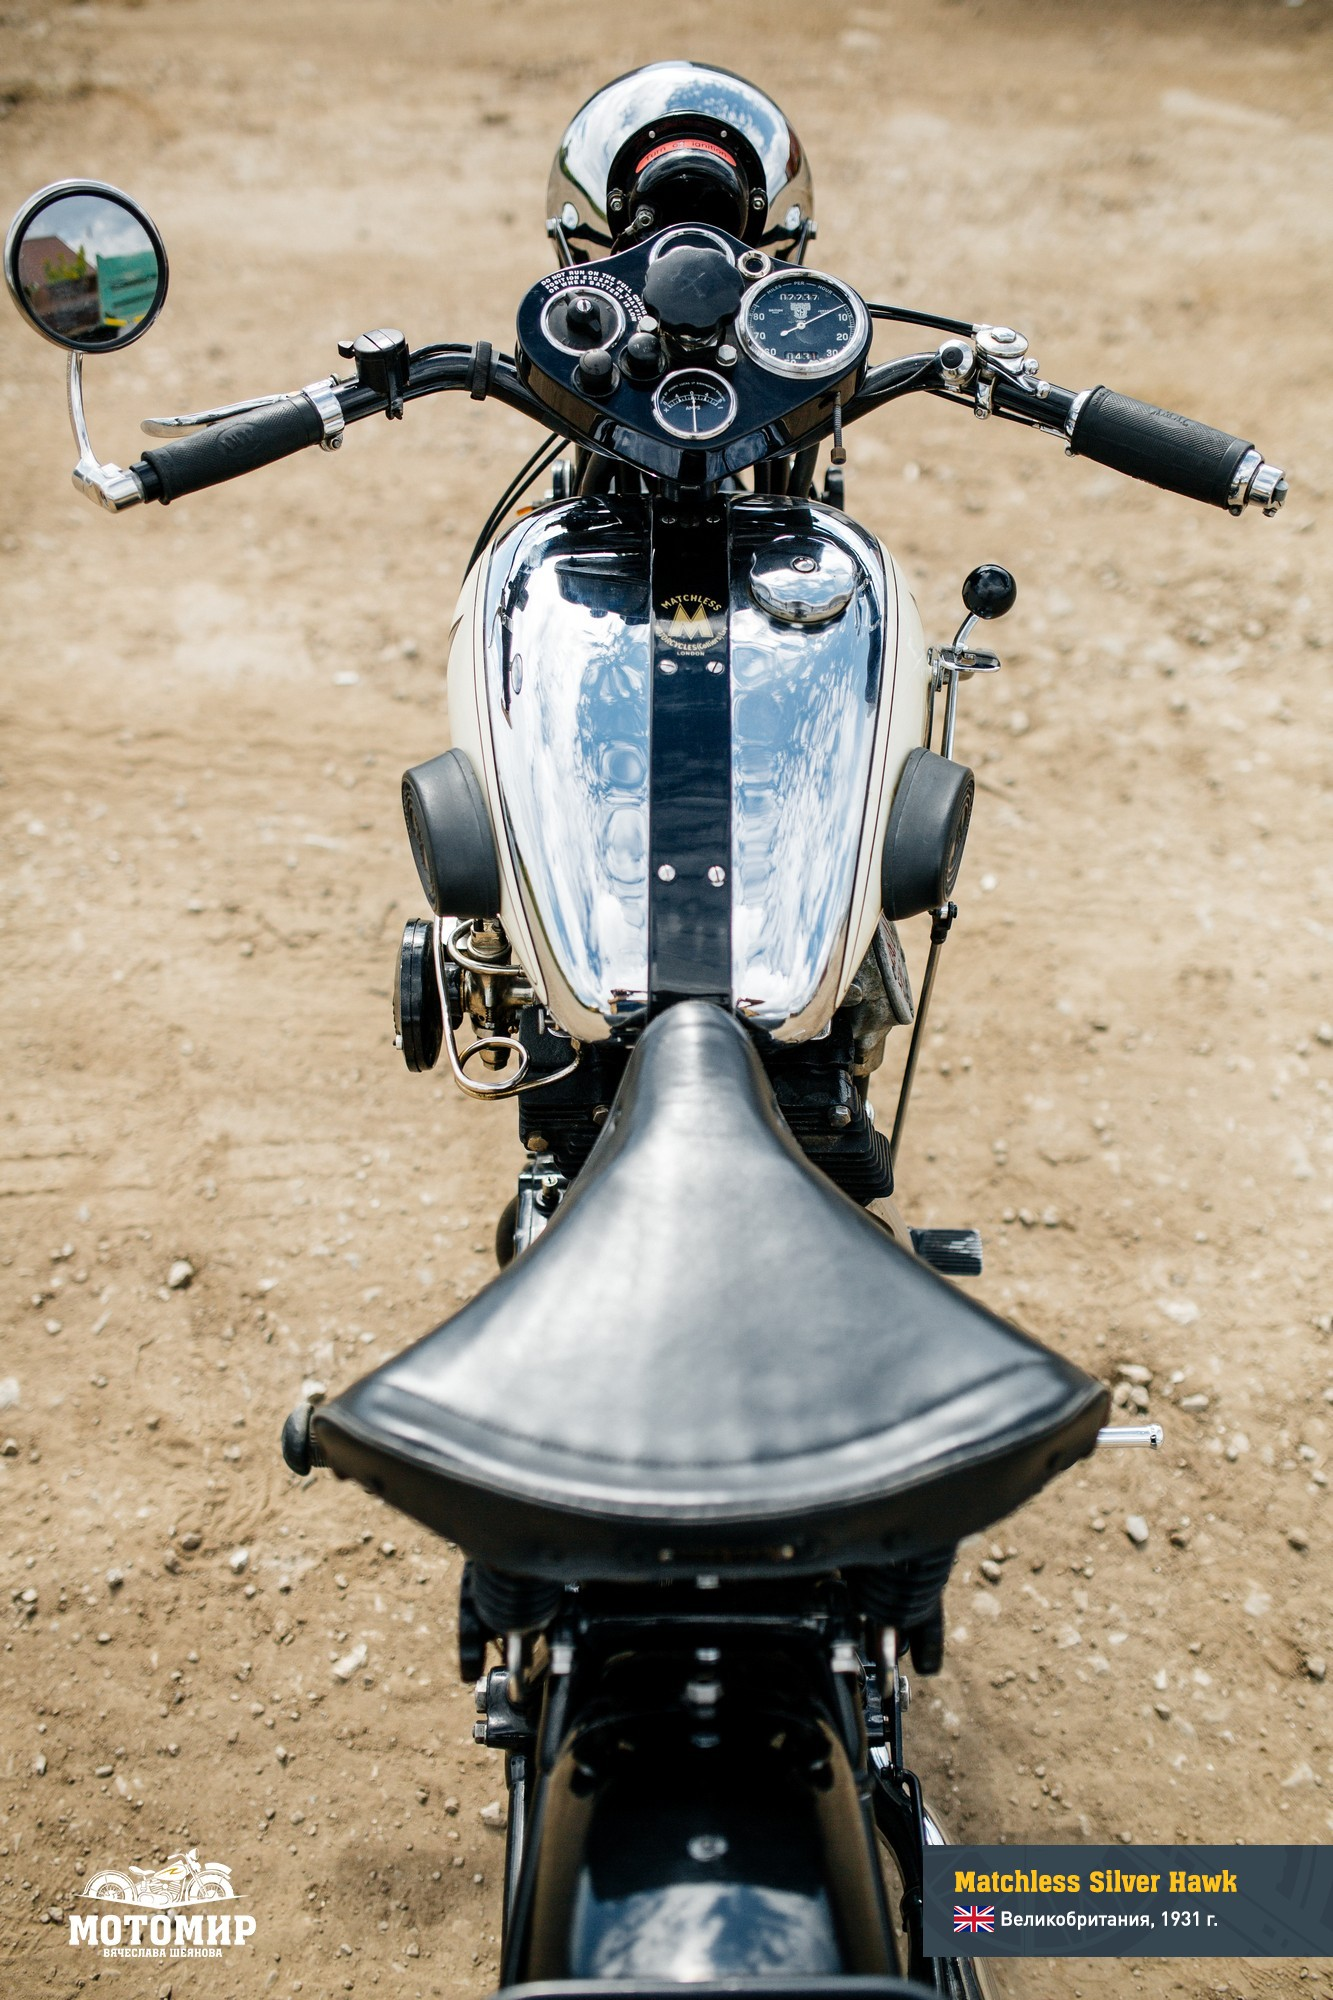 matchless-silver-hawk-201510-web-24